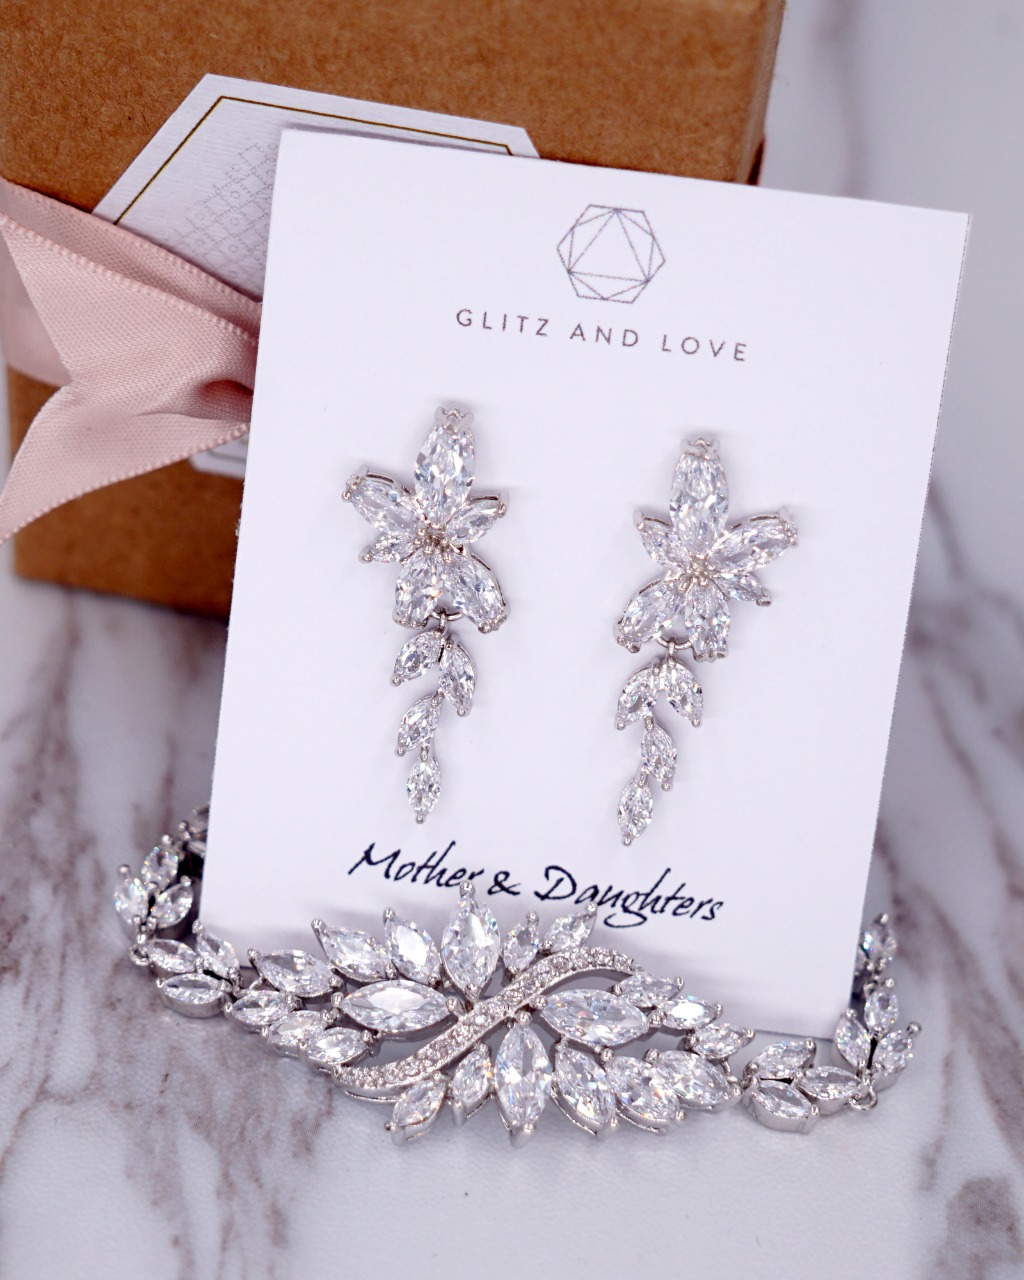 Silver Marquise CZ Jewelry Set, Earrings, Bracelet, cubic zirconia, wedding, brides, bridesmaids, bridal shower gifts, www.glitzandlove